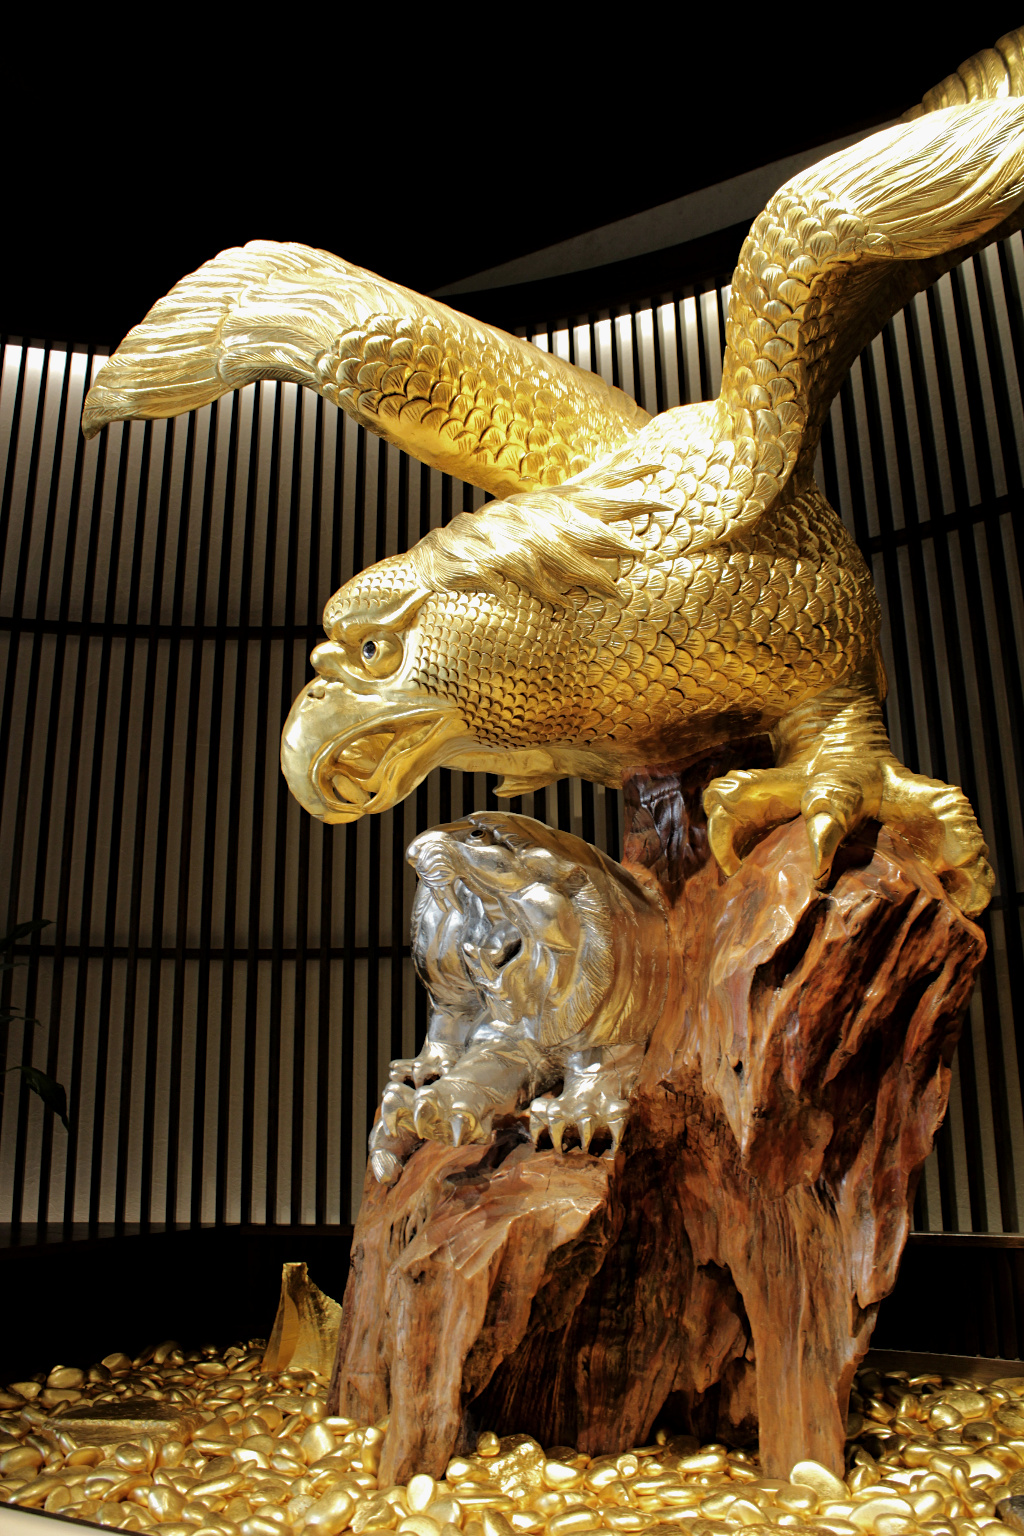 A massive wooden statue of an eagle and tiger fighting, treated with gold and silver foil application techniques of Kanazawa, a the Sakuda store in the Higashi Chaya geisha district in Kanazawa